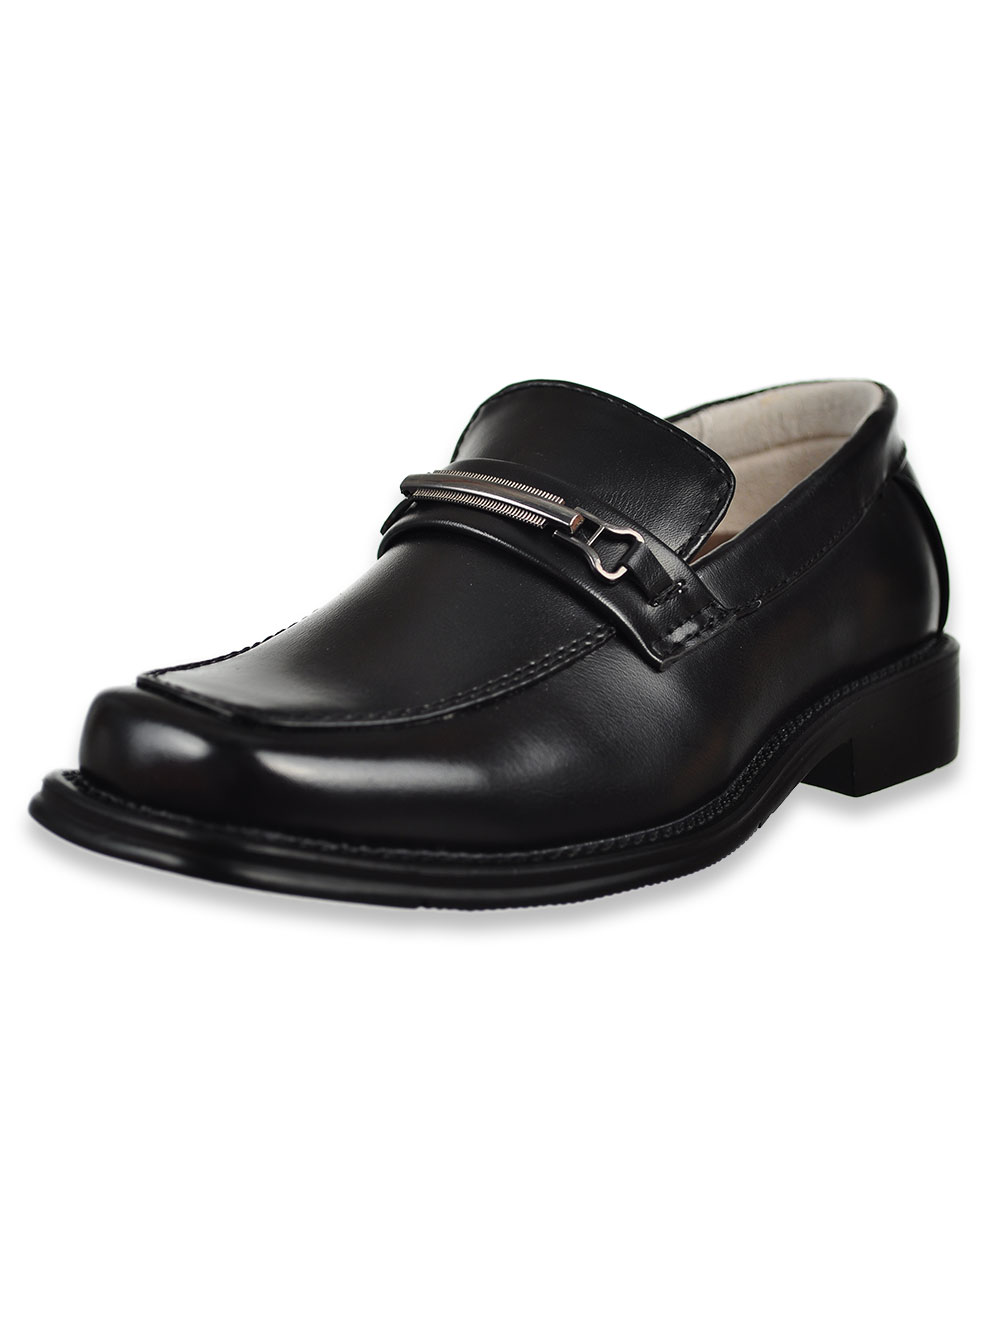 Sizes 11-8 Easy Strider Girls/' Loafers